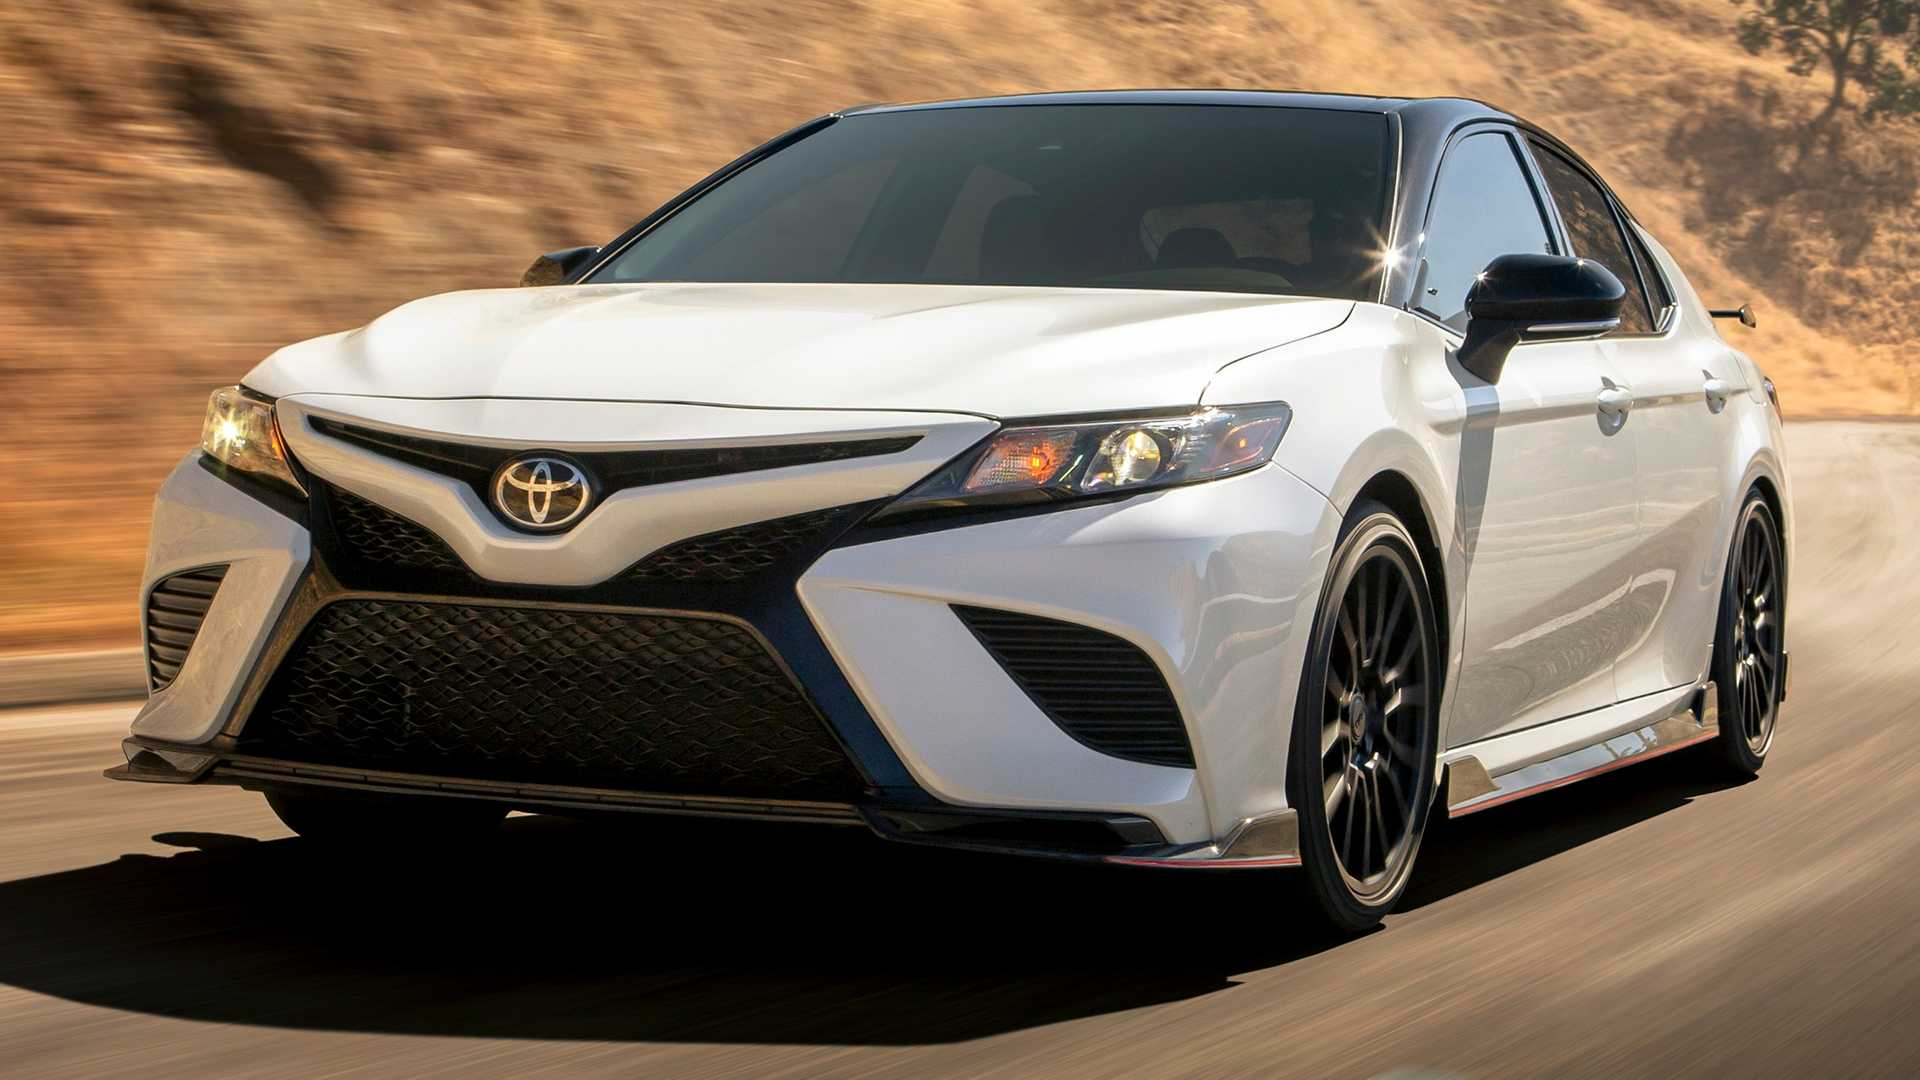 2020 Camry Se Review.2020 Toyota Camry Trd Costs 31 995 It S The Cheapest Camry V6